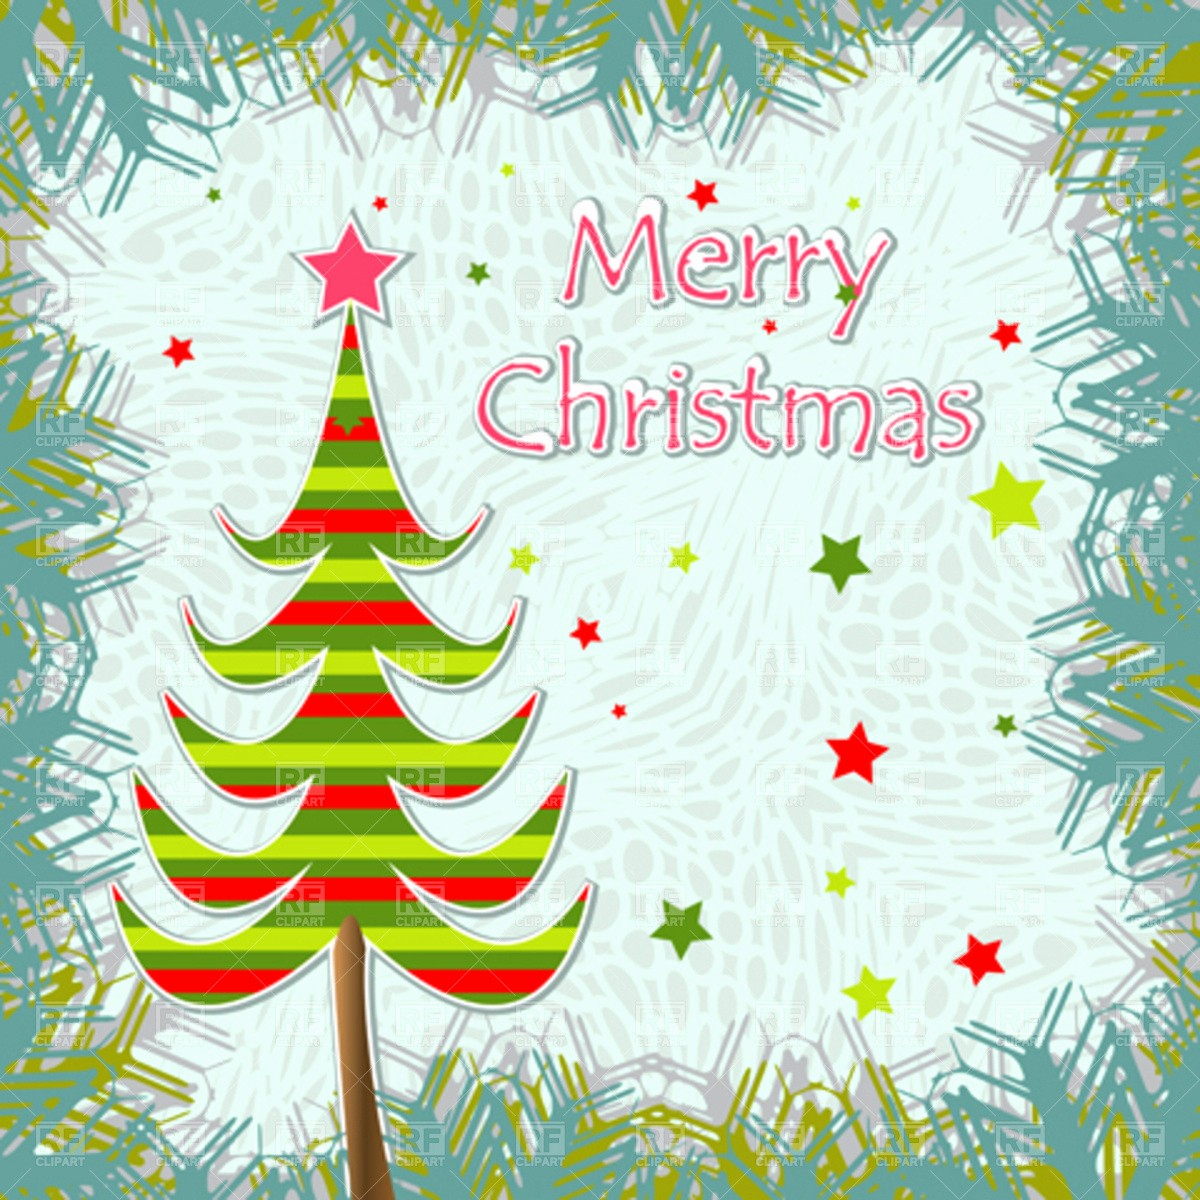 Greeting Cards Templates Free Downloads Fresh Free Christmas Card Templates